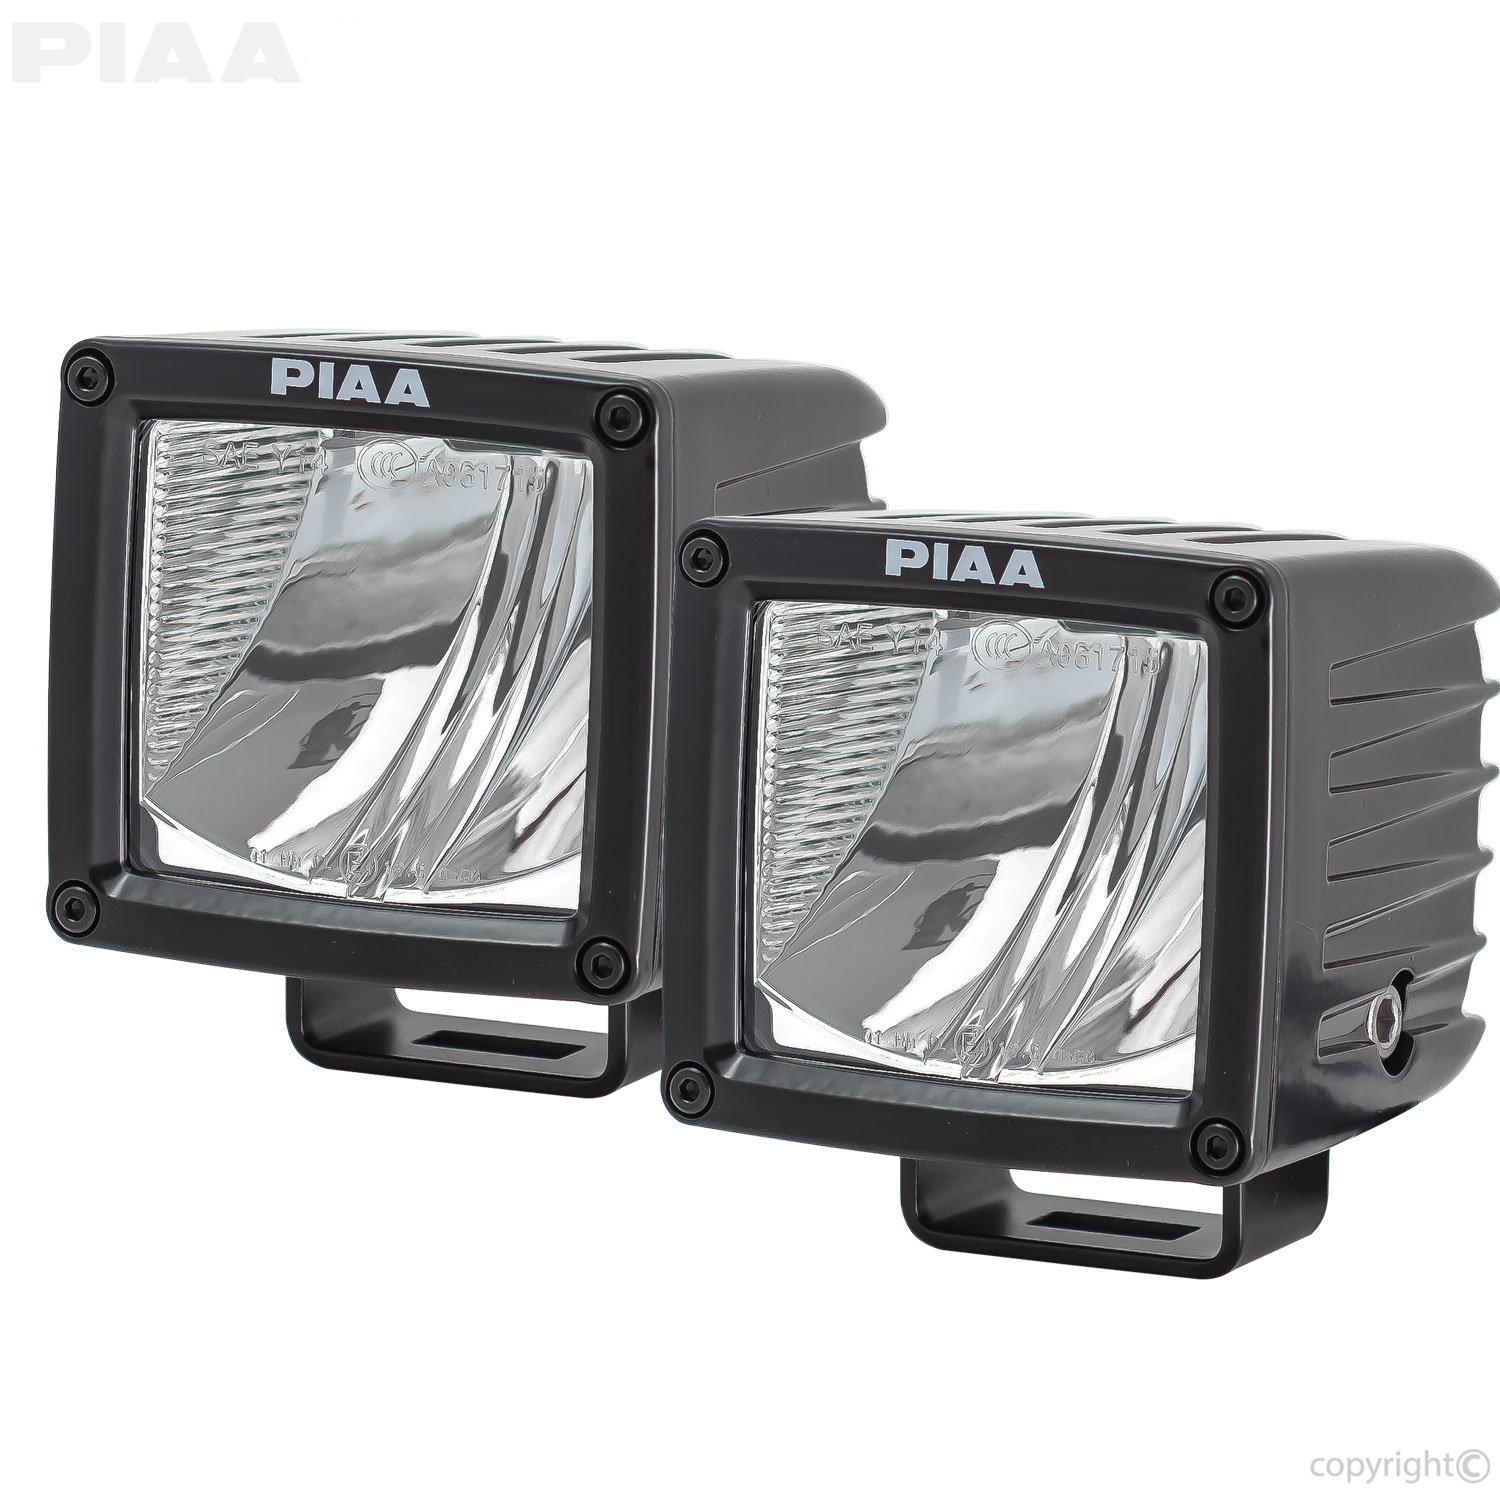 piaa 77603 rf3 led dual hr?bw=1000&w=1000&bh=1000&h=1000 piaa motorcycle led lights  at sewacar.co